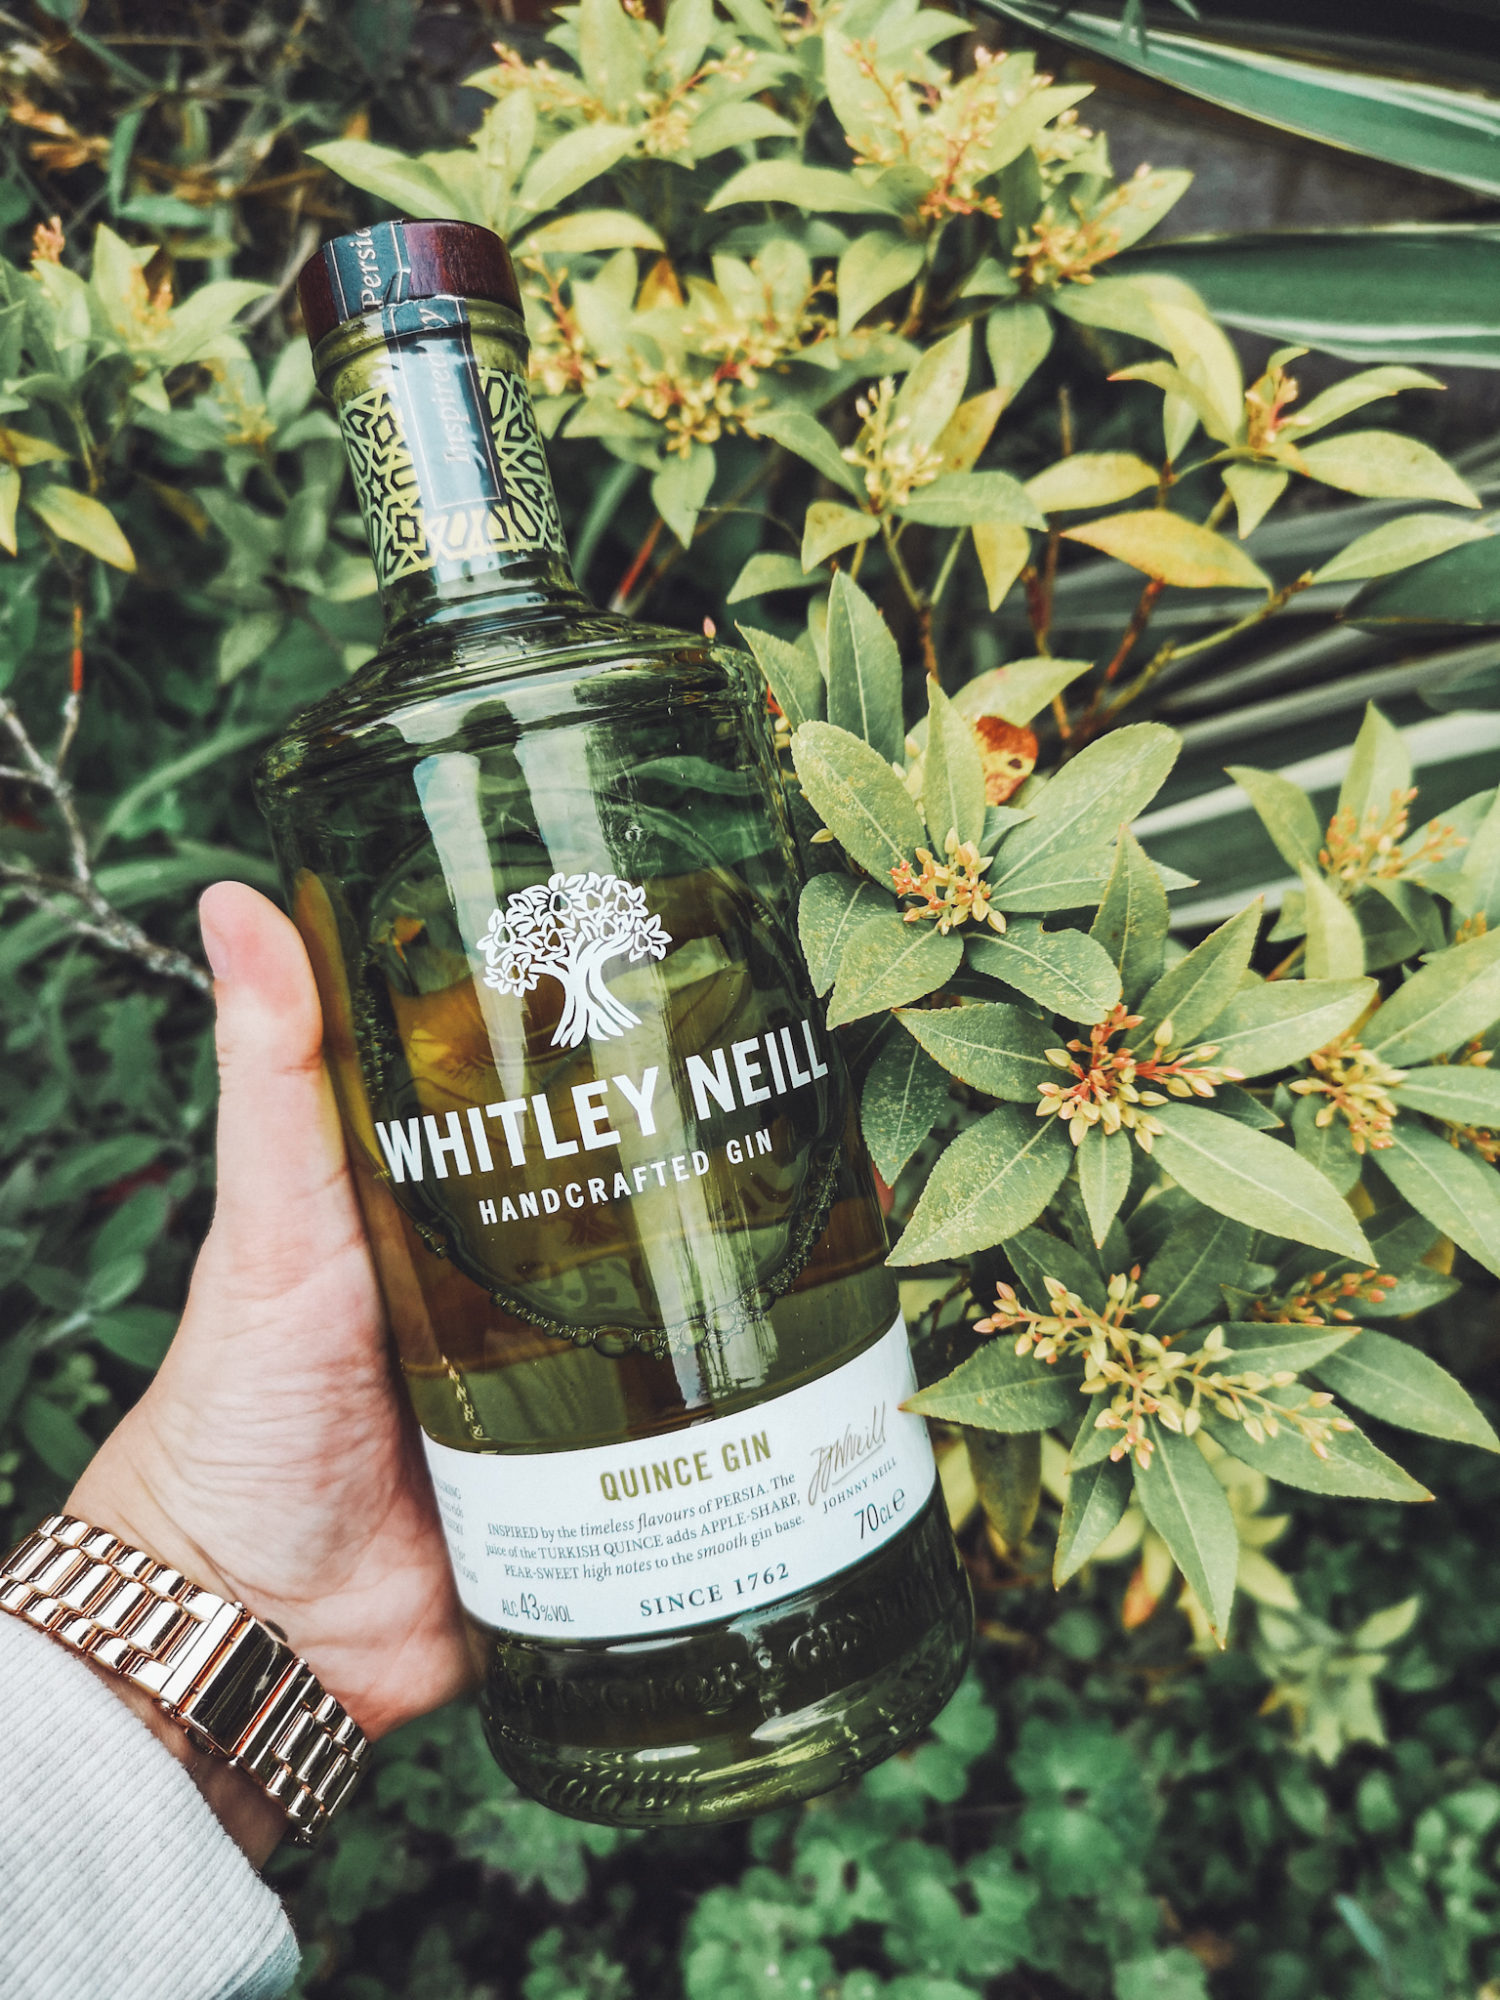 Gluten Free Whitley Neill quince gin